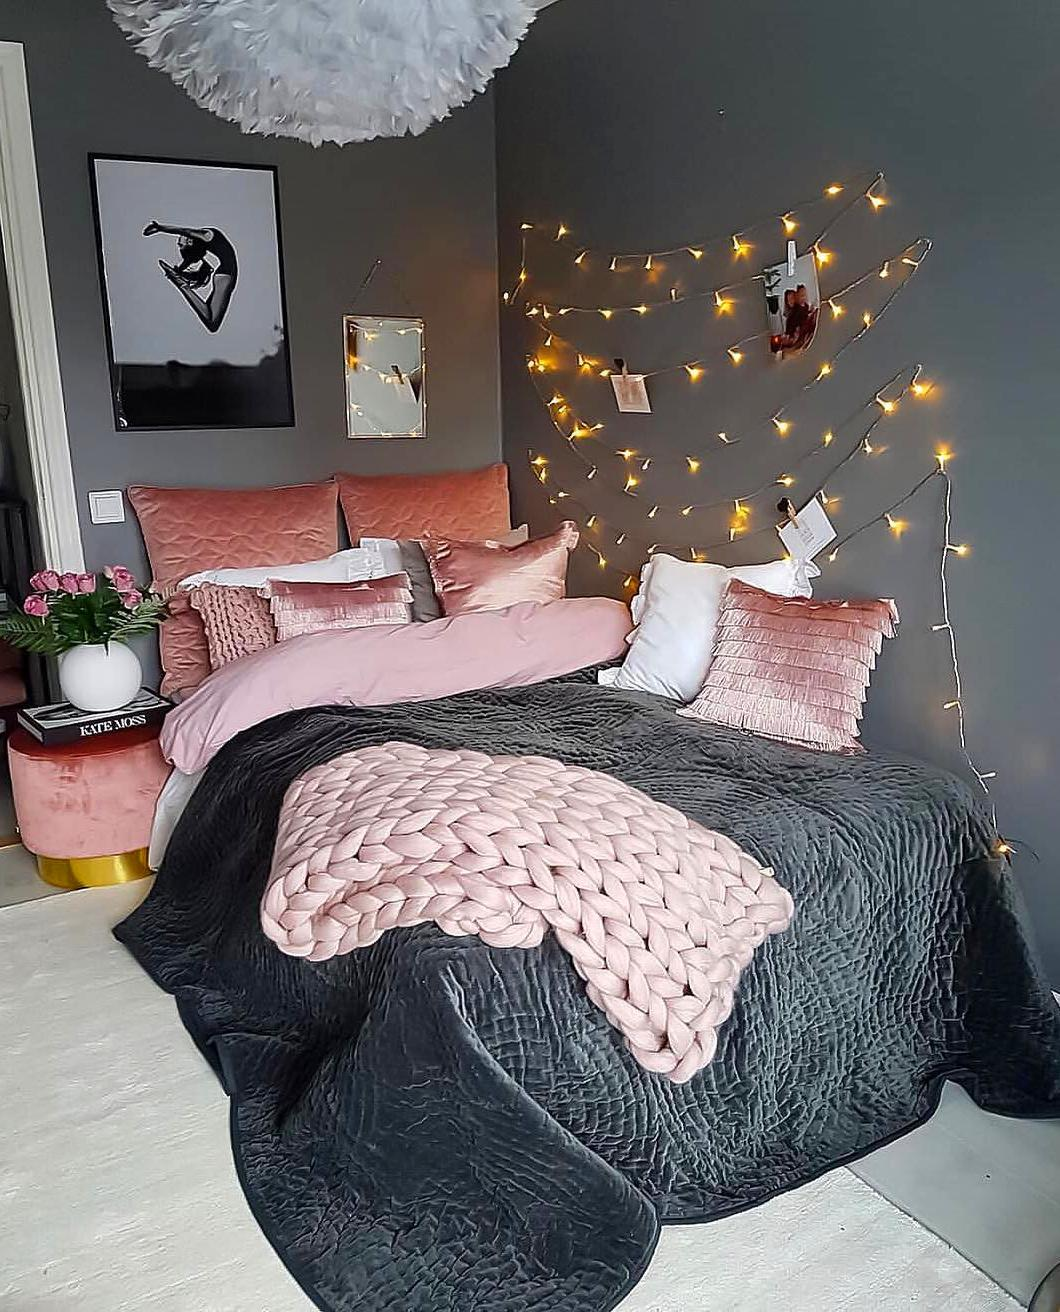 50+ Master Bedroom Decor Ideas For You;bedroom ideas master;bedroom decor ideas #bedroom